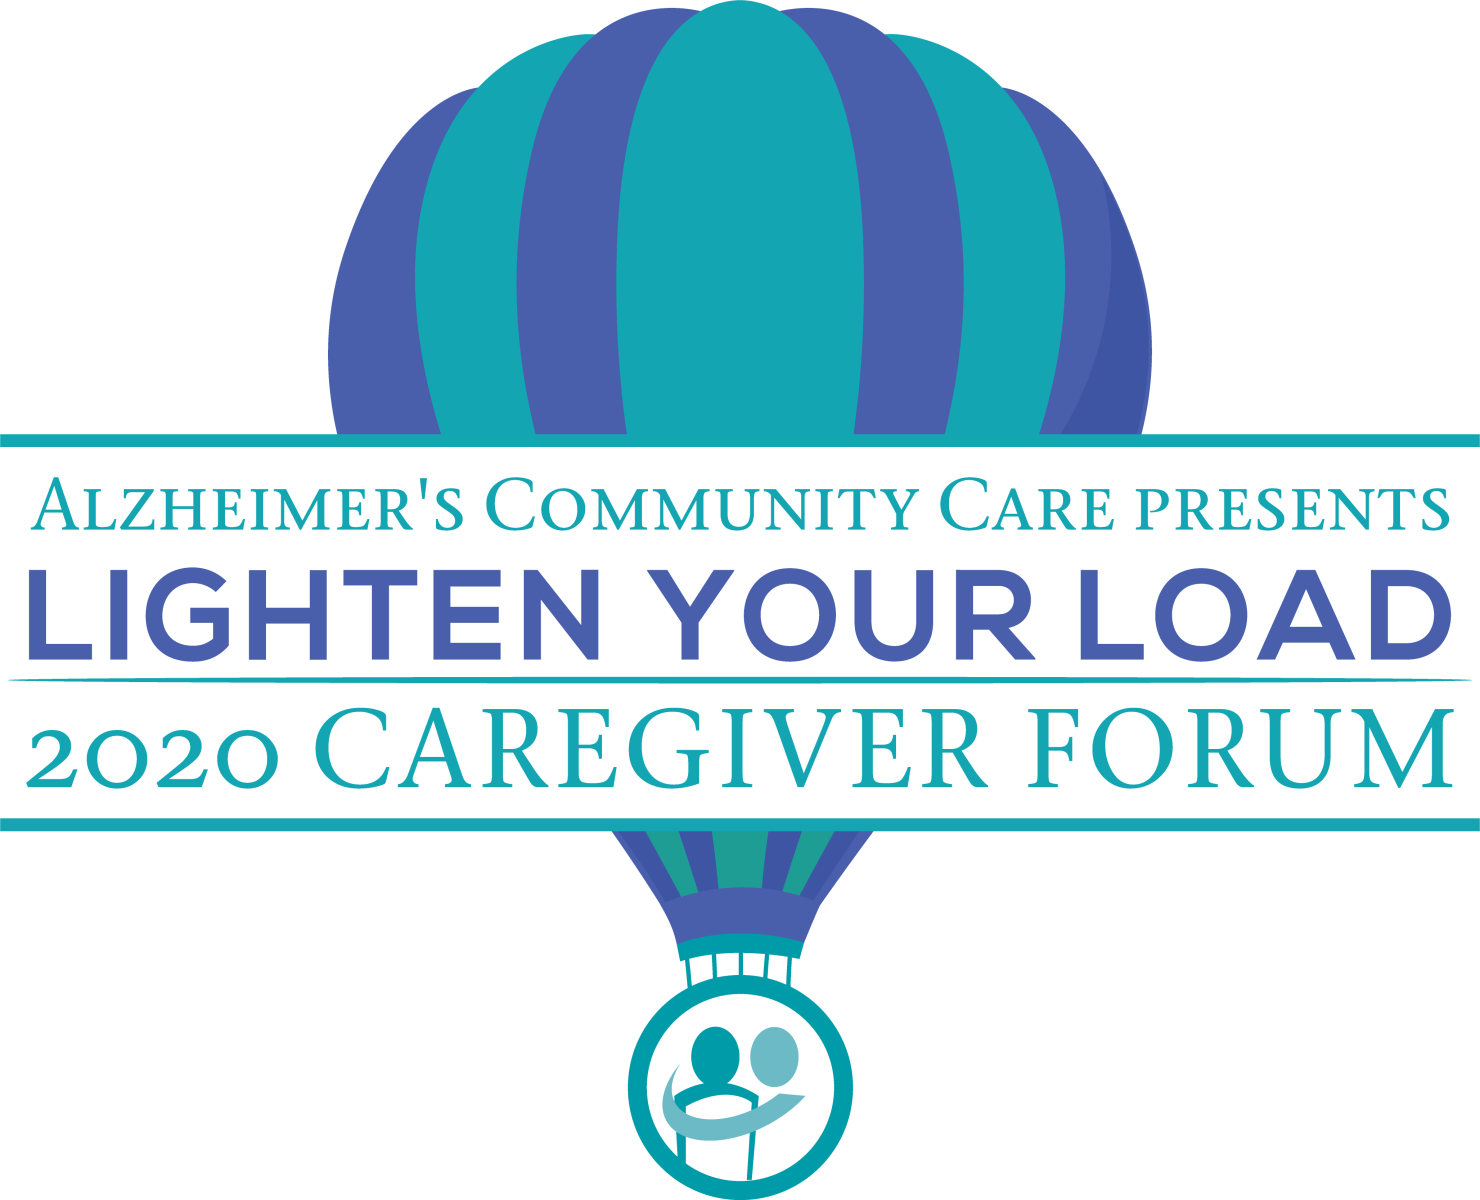 Alzheimer's Community Care presents Lighten Your Load 2019 Caregiver Forum